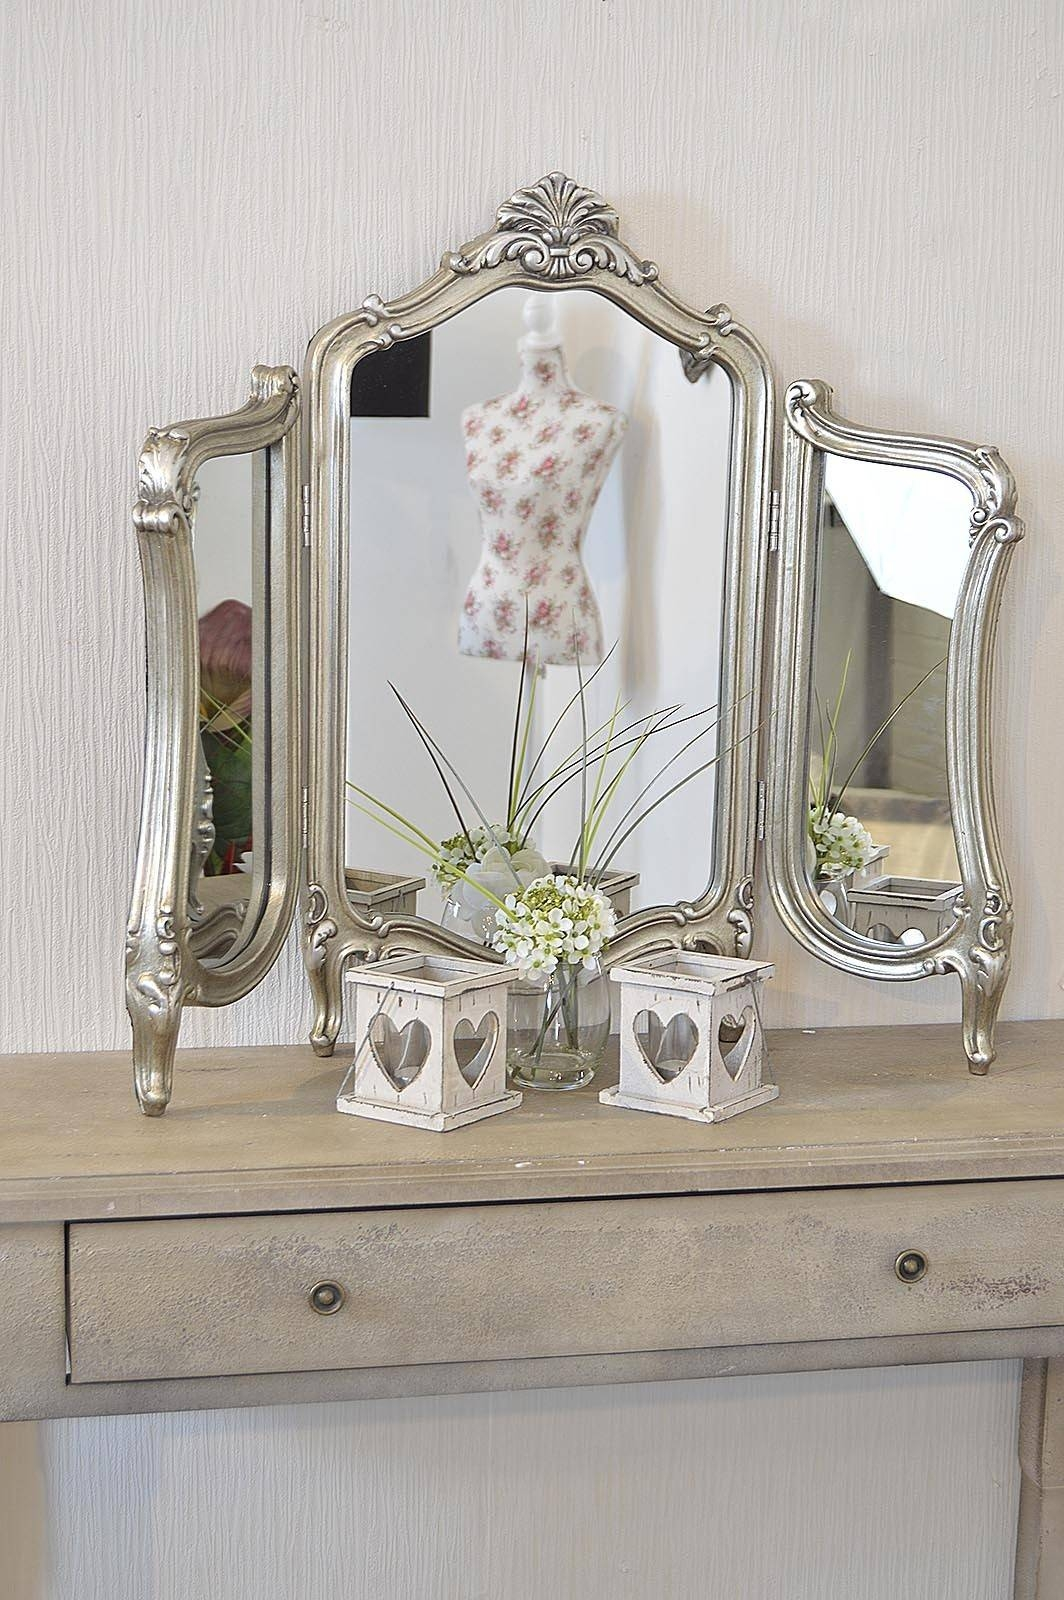 Dressing Table Mirrors | Best Decor Things pertaining to Dressing Table Mirrors (Image 10 of 25)